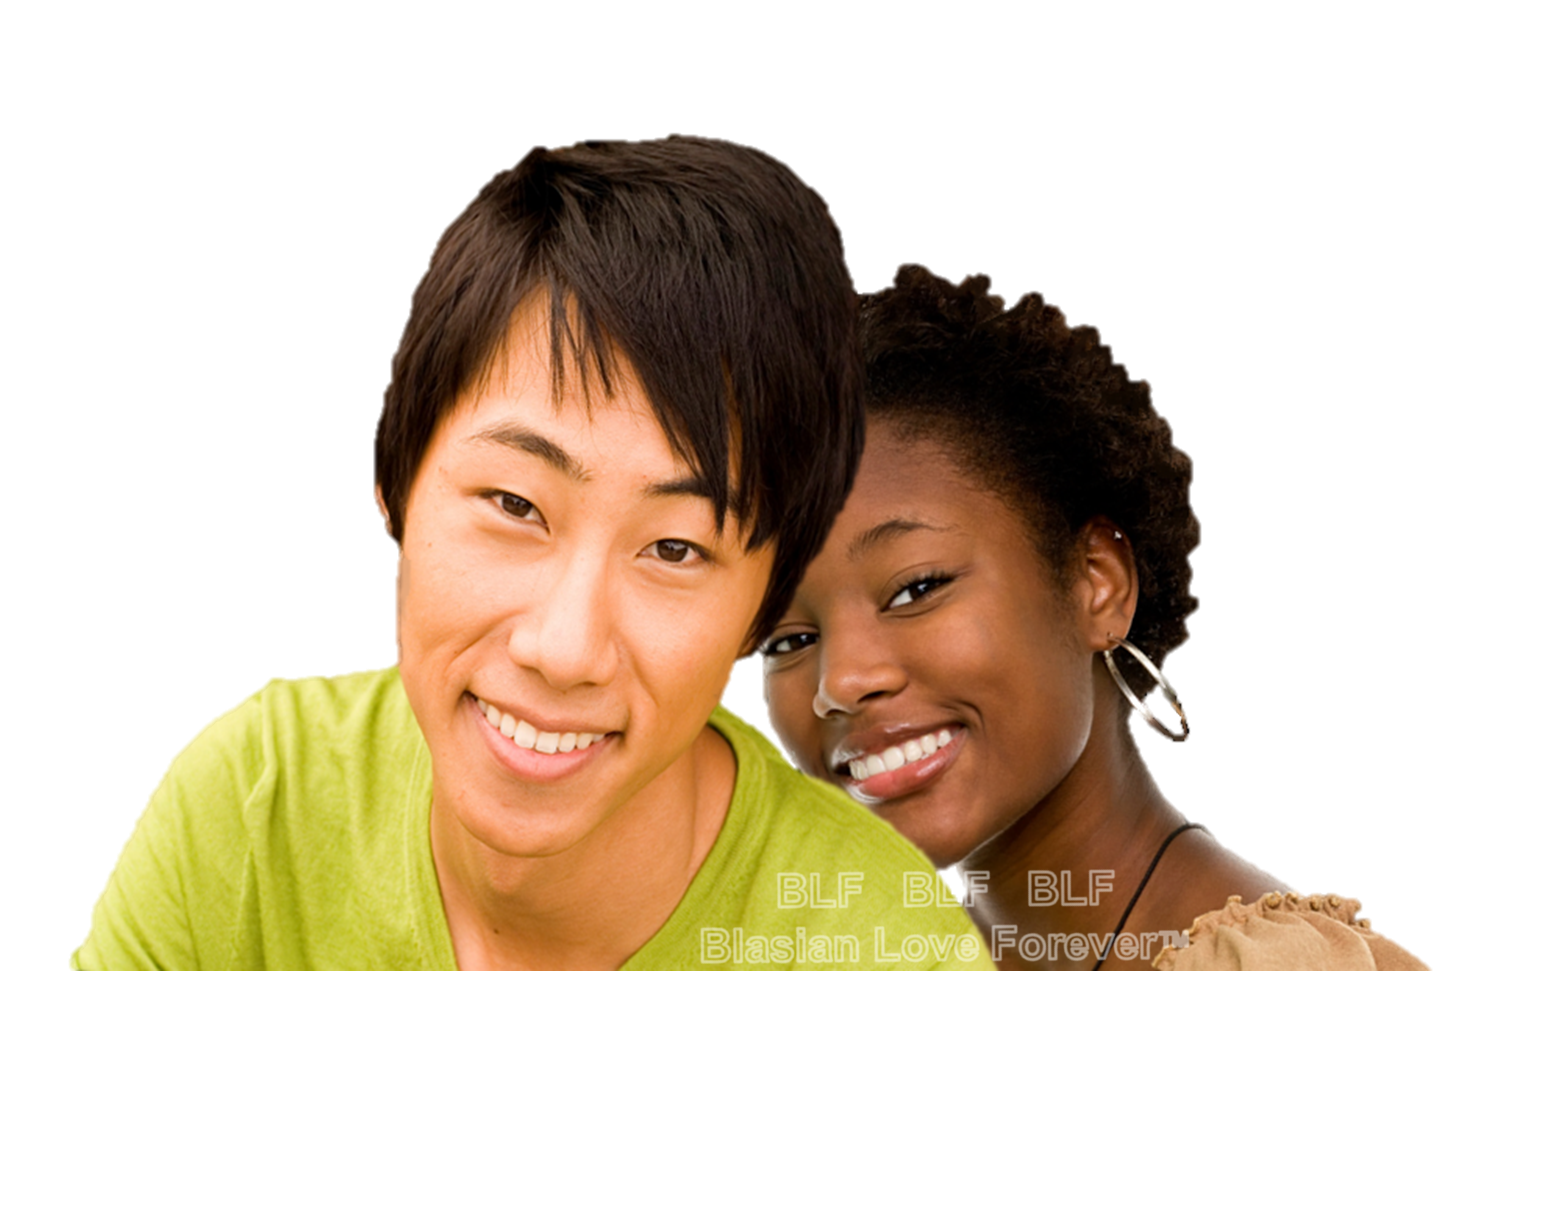 allenspark black women dating site Why online dating doesn't work for black women | madamenoire – looking to find love online this year you might need to look elsewhere the studies are in and black women come near the bottom of the pile when it comes to finding []  //wwwsinglesdatematchcom/smooch-online-dating/online-dating-tips-for-black.